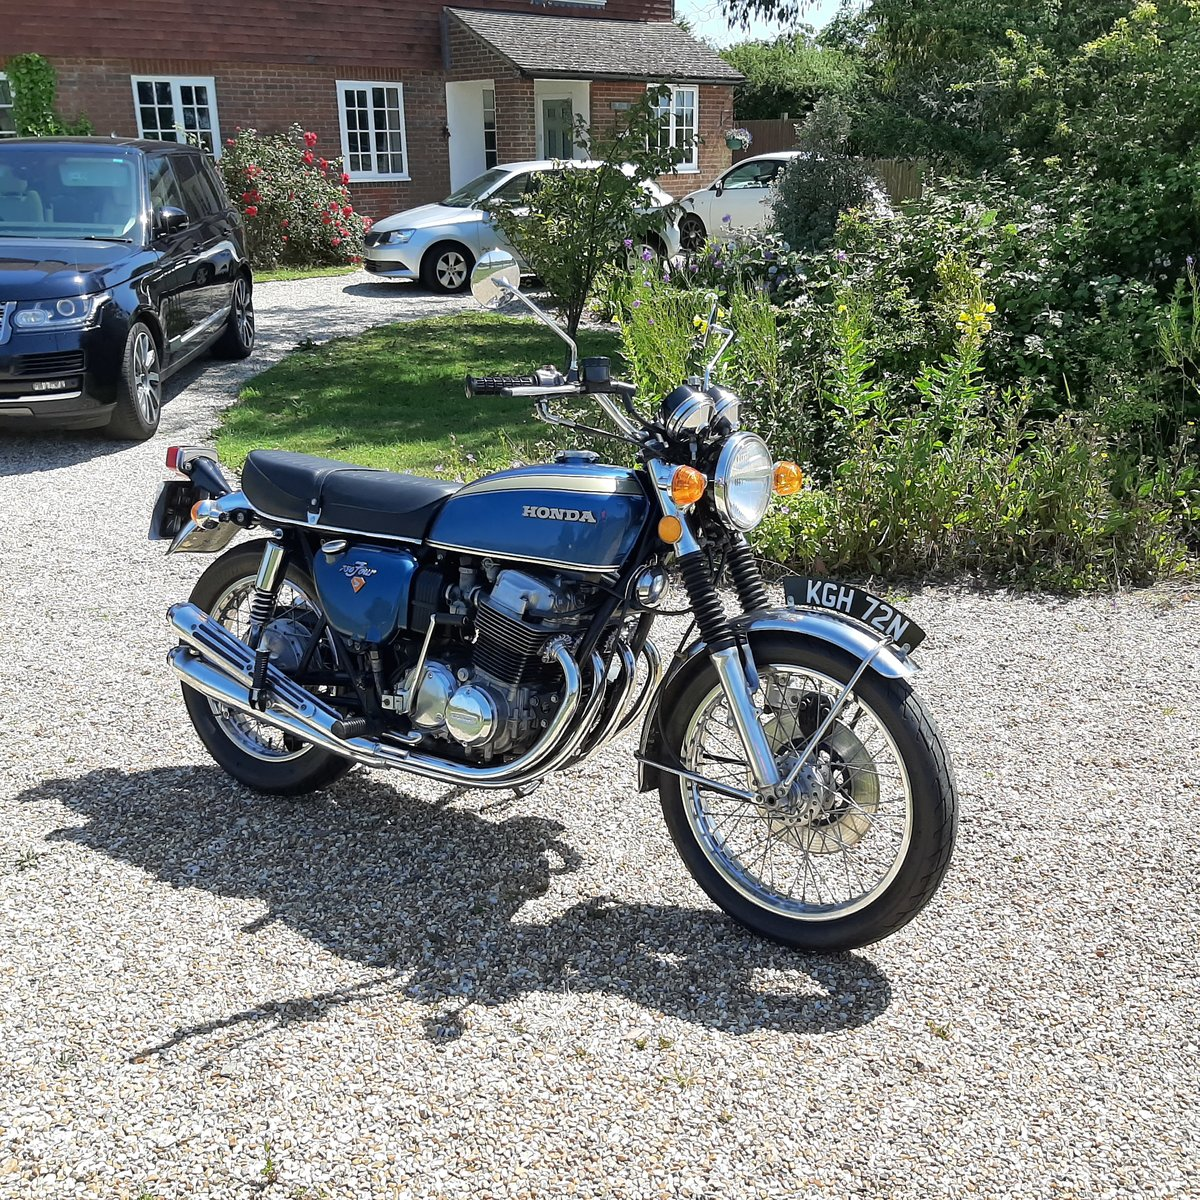 1975 Honda CB750K2 UK Motorcycle For Sale (picture 6 of 6)